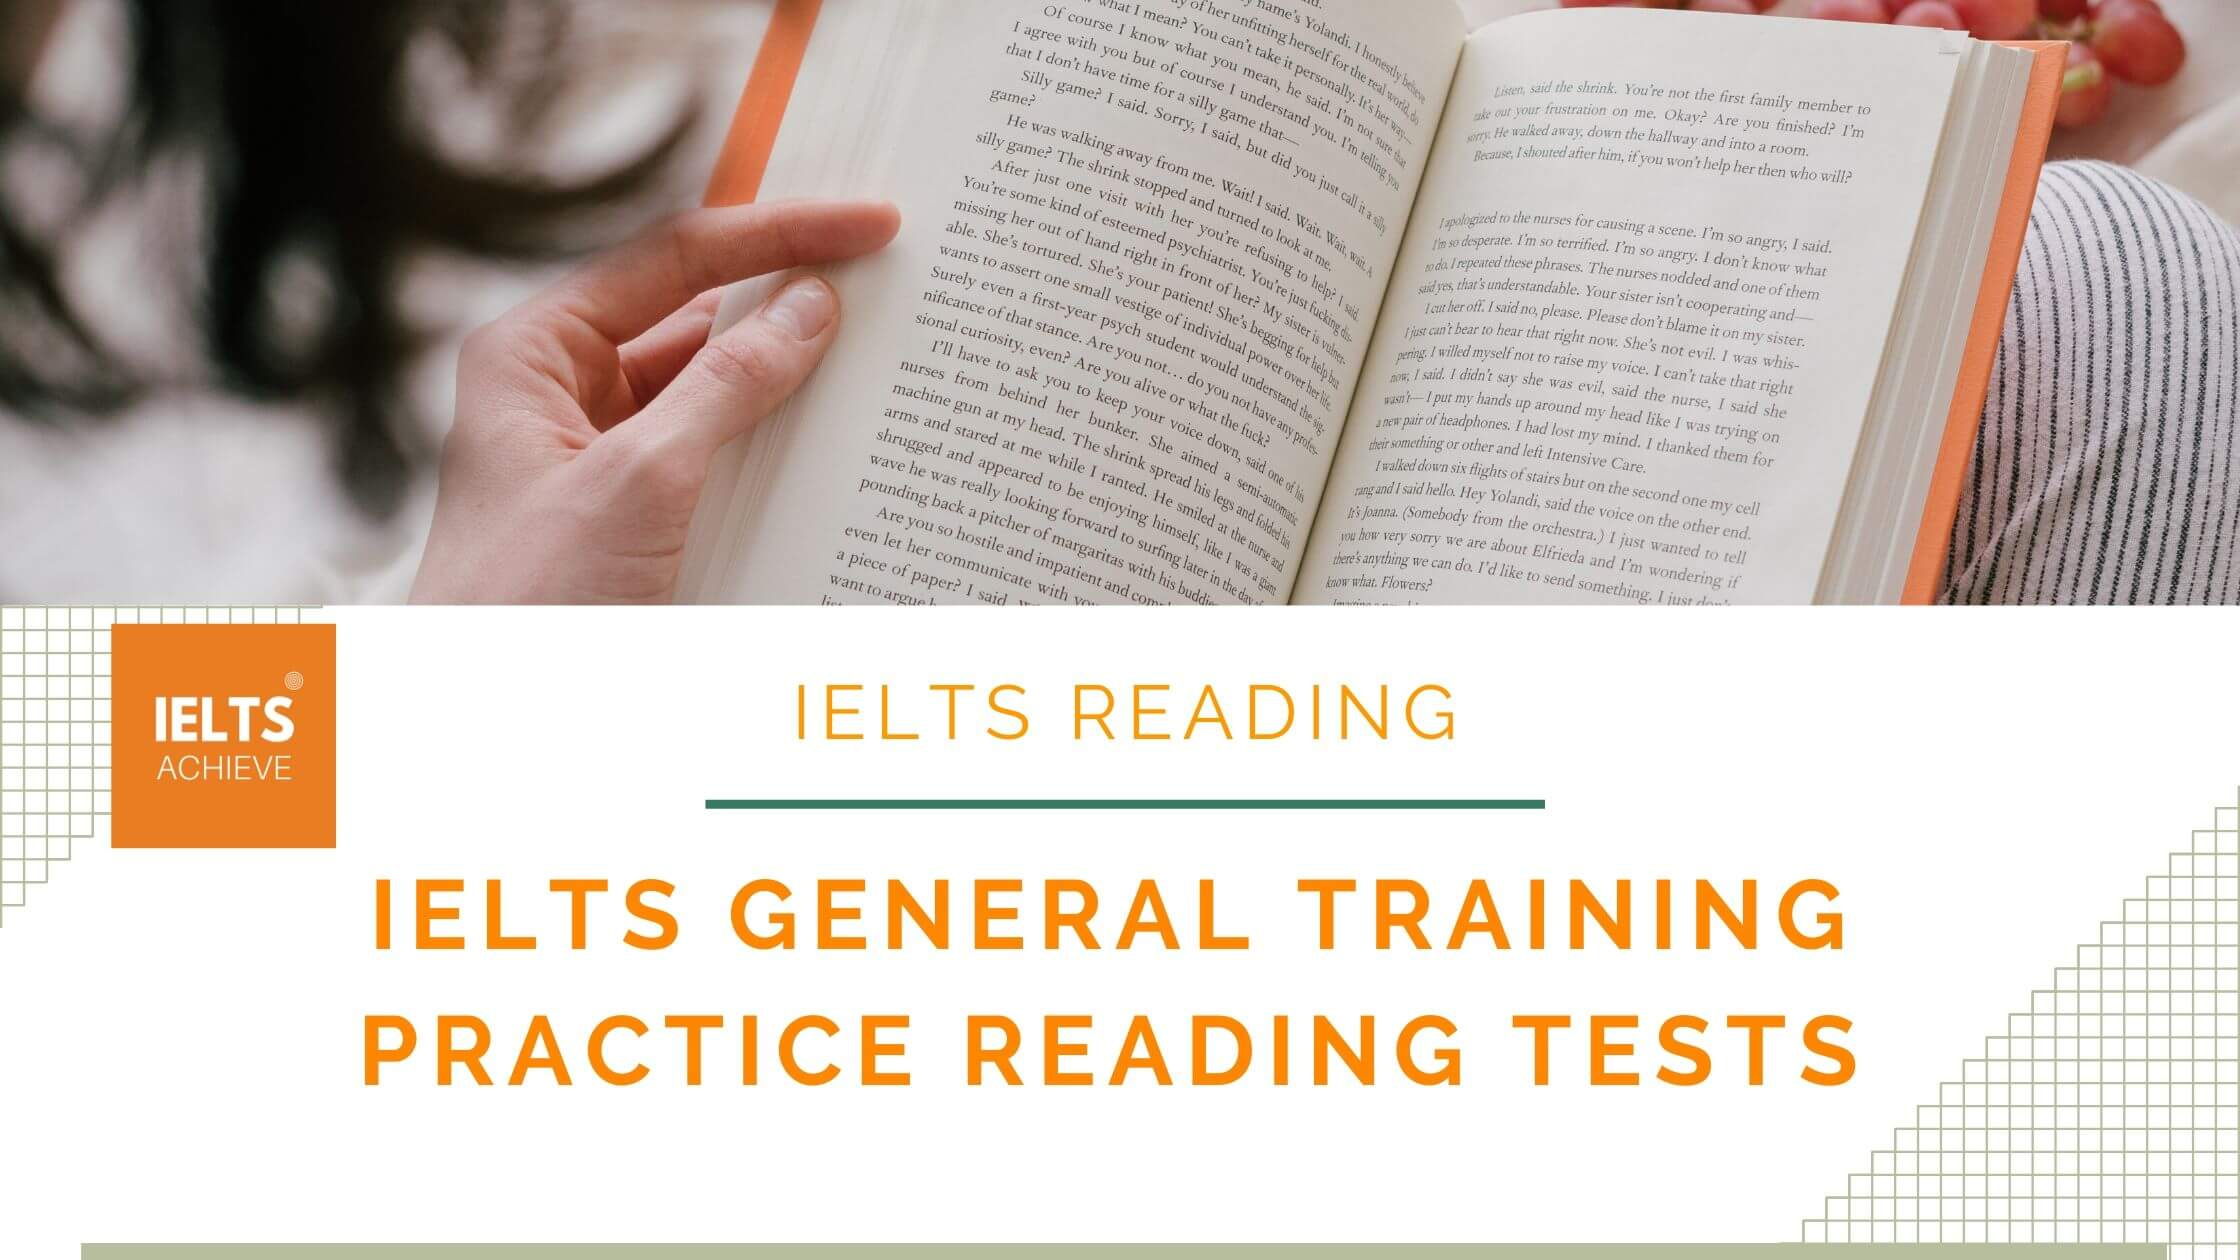 IELTS GENERAL TRAINING PRACTICE READING TESTS